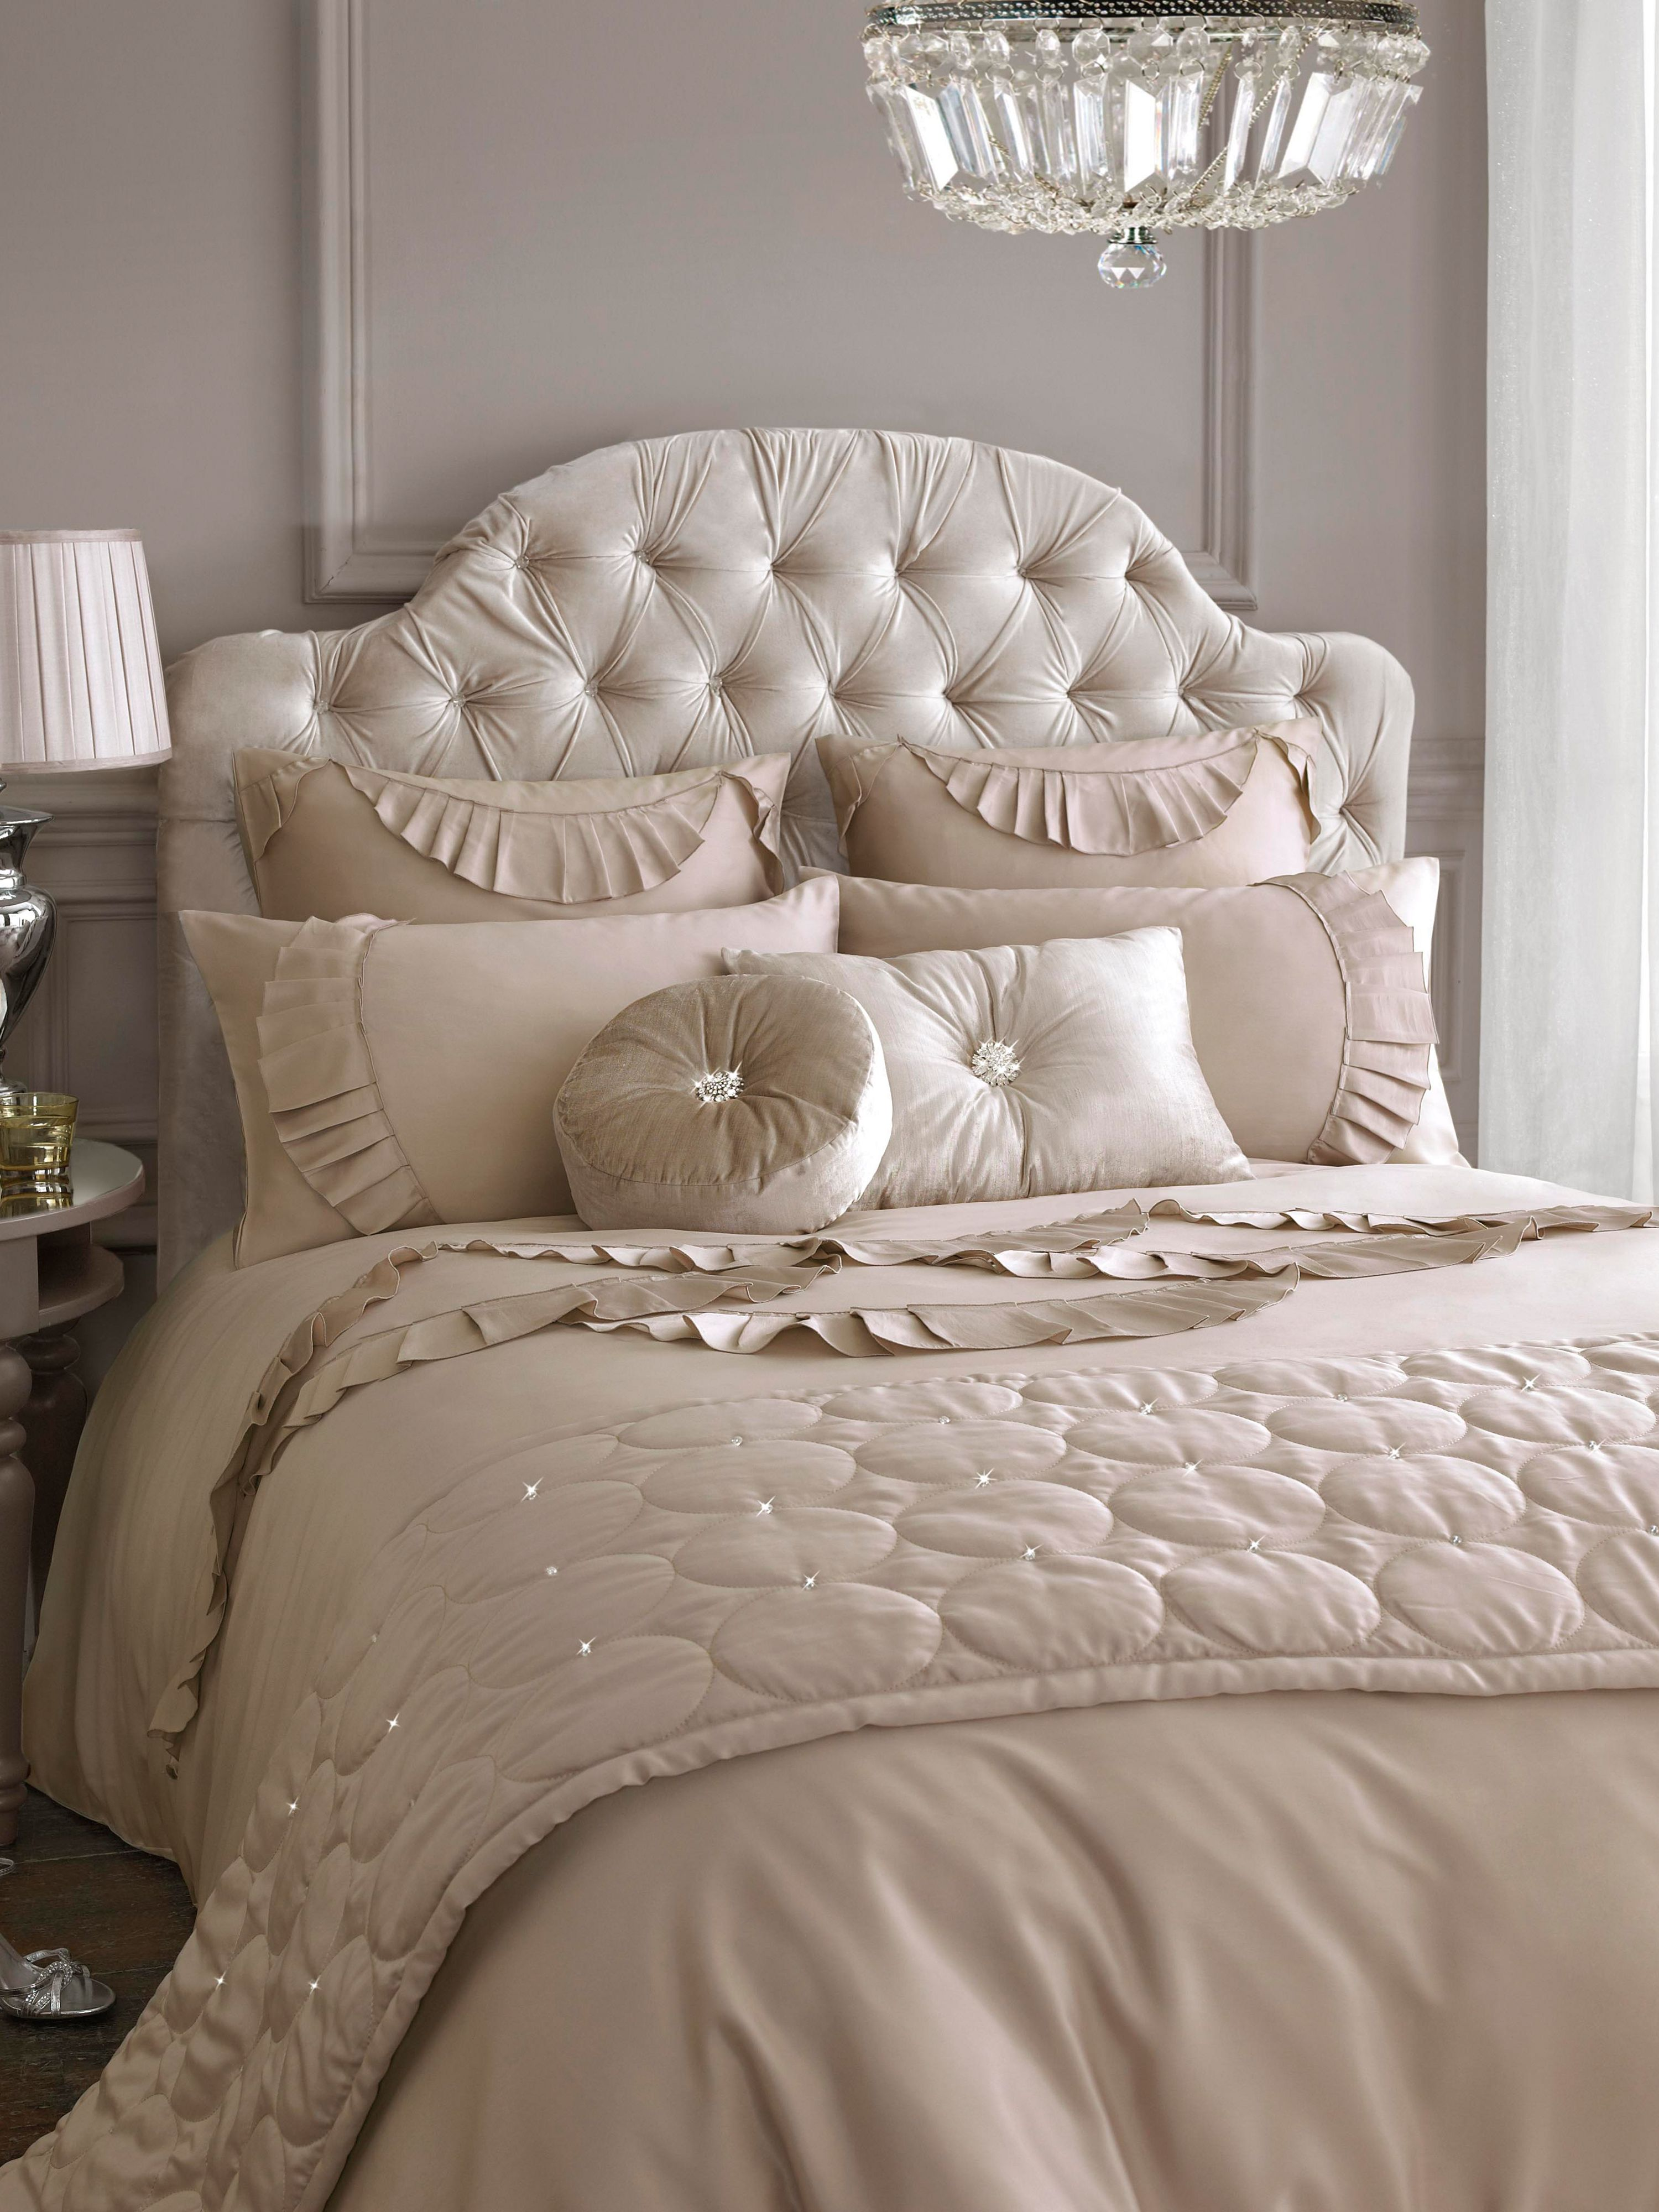 Evangeline double duvet cover